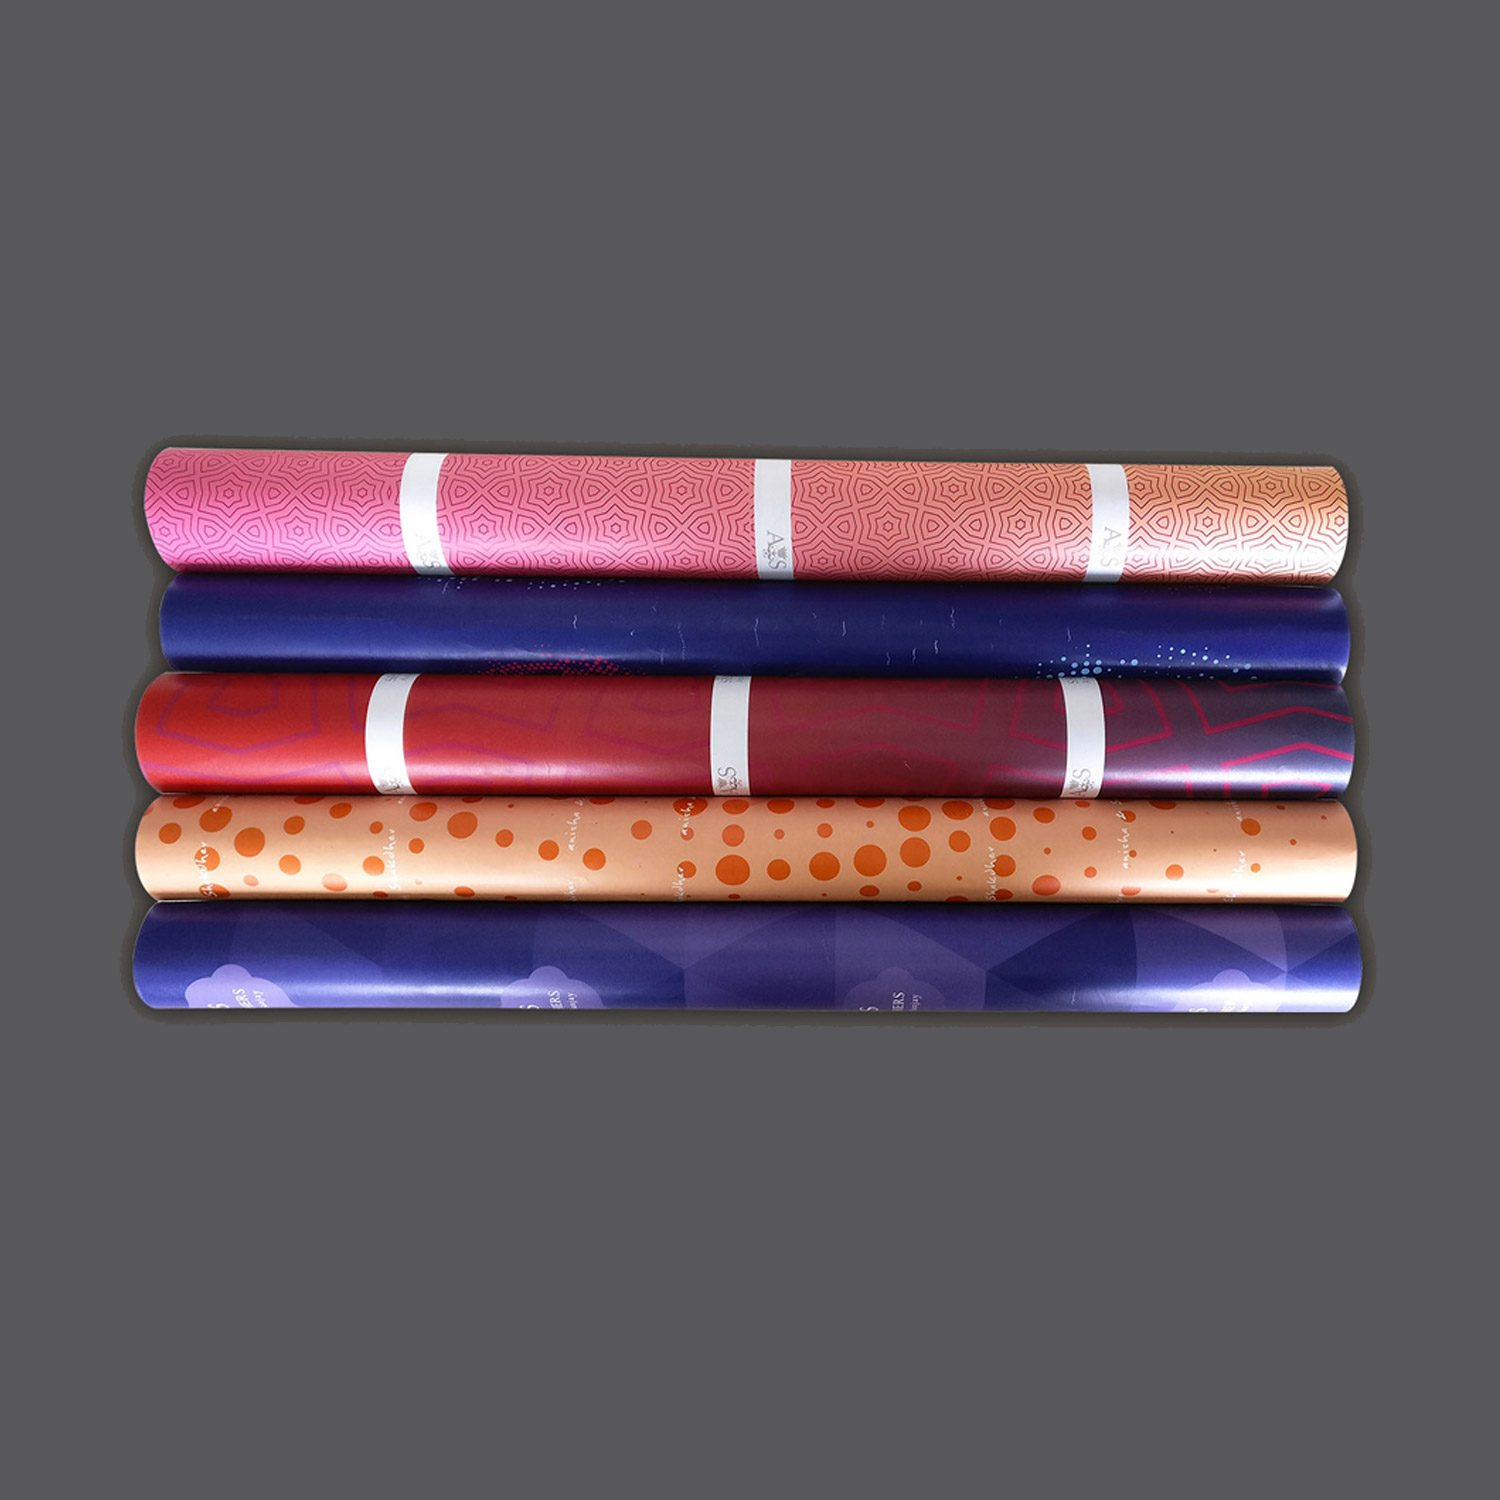 Assorted-Collection-Wrapping-Paper-Message-Name-Customisation-928×627